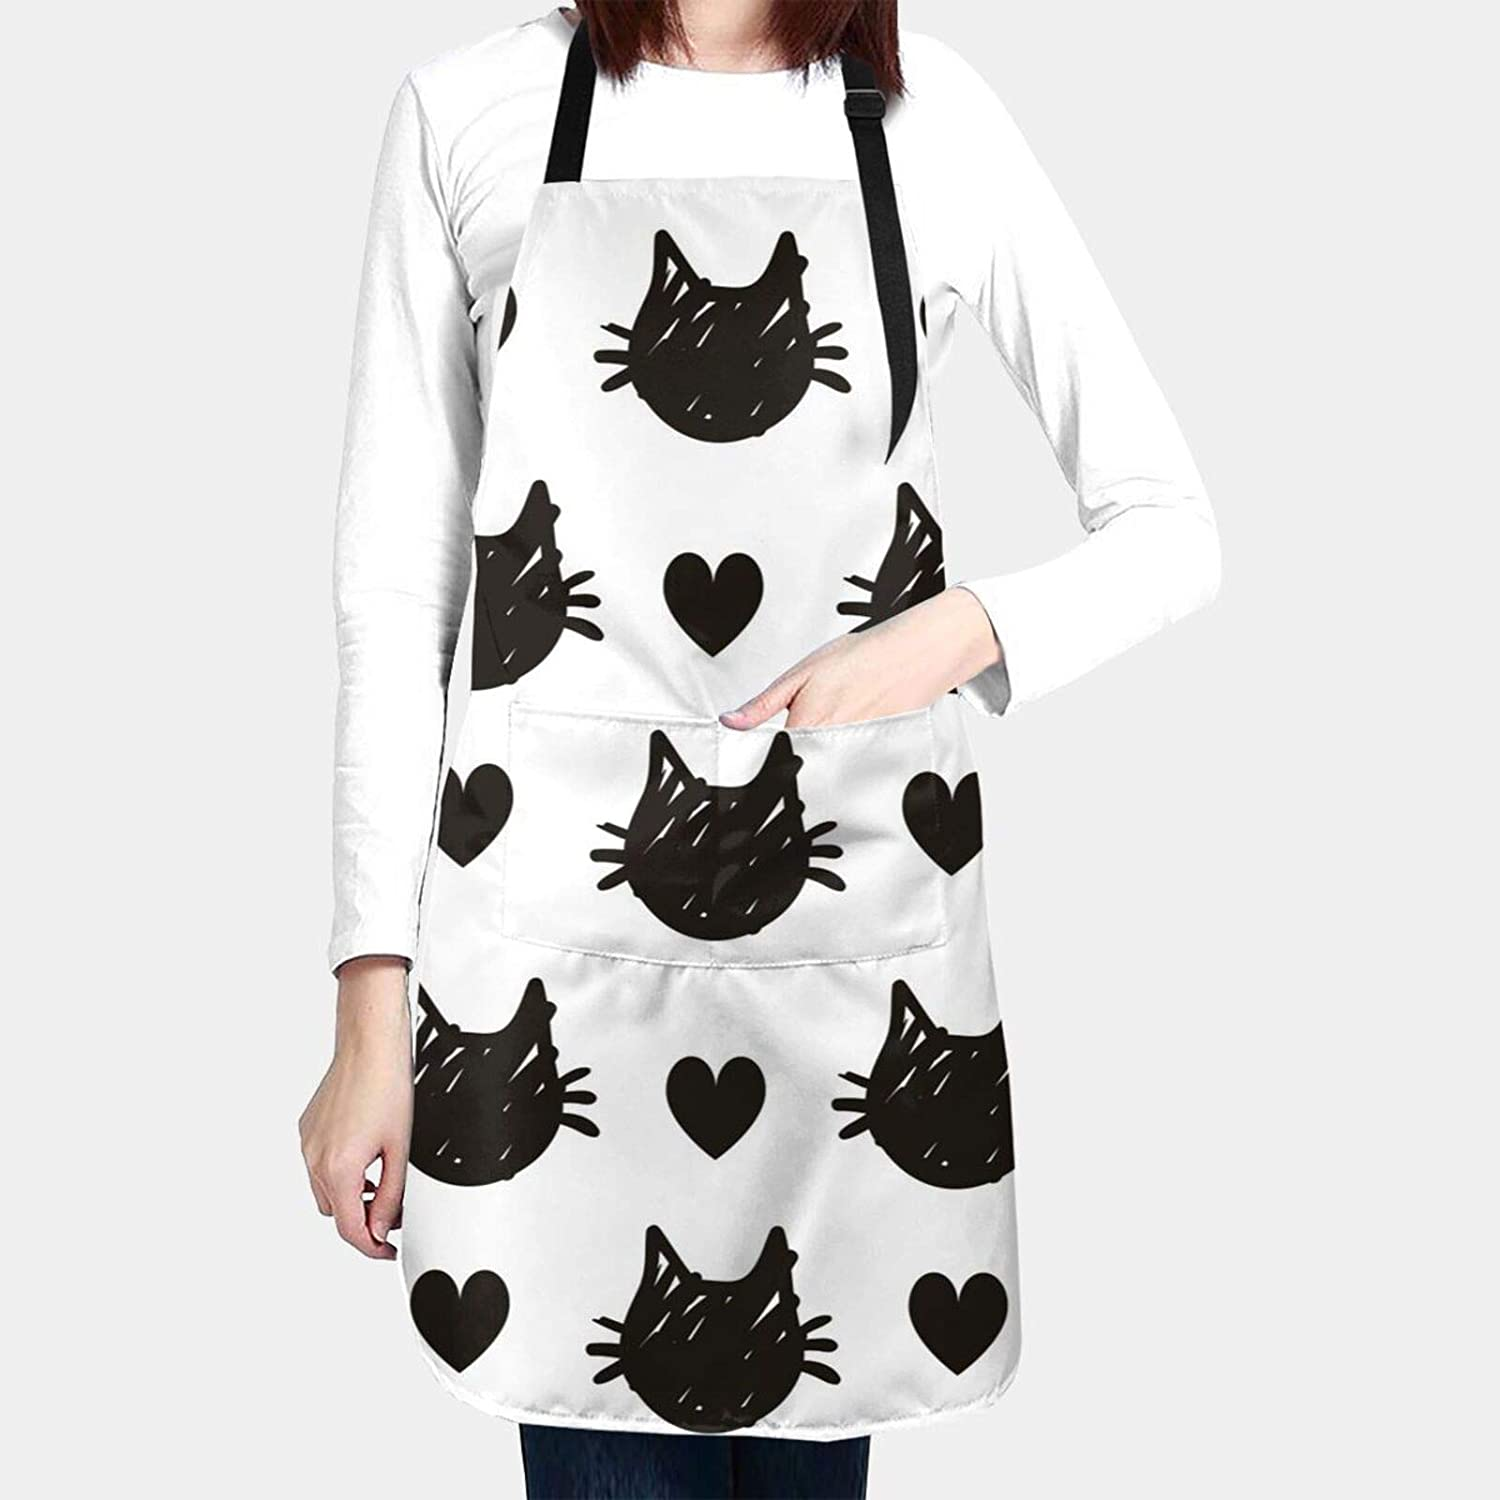 Cute Black Cat Heads Apron Water Proof Baking Apron for Women Men with 2 Front Pockets and Adjustable Neck & Long Ties for Everyday Basic Home Kitchen Artist Crafting Restaurant